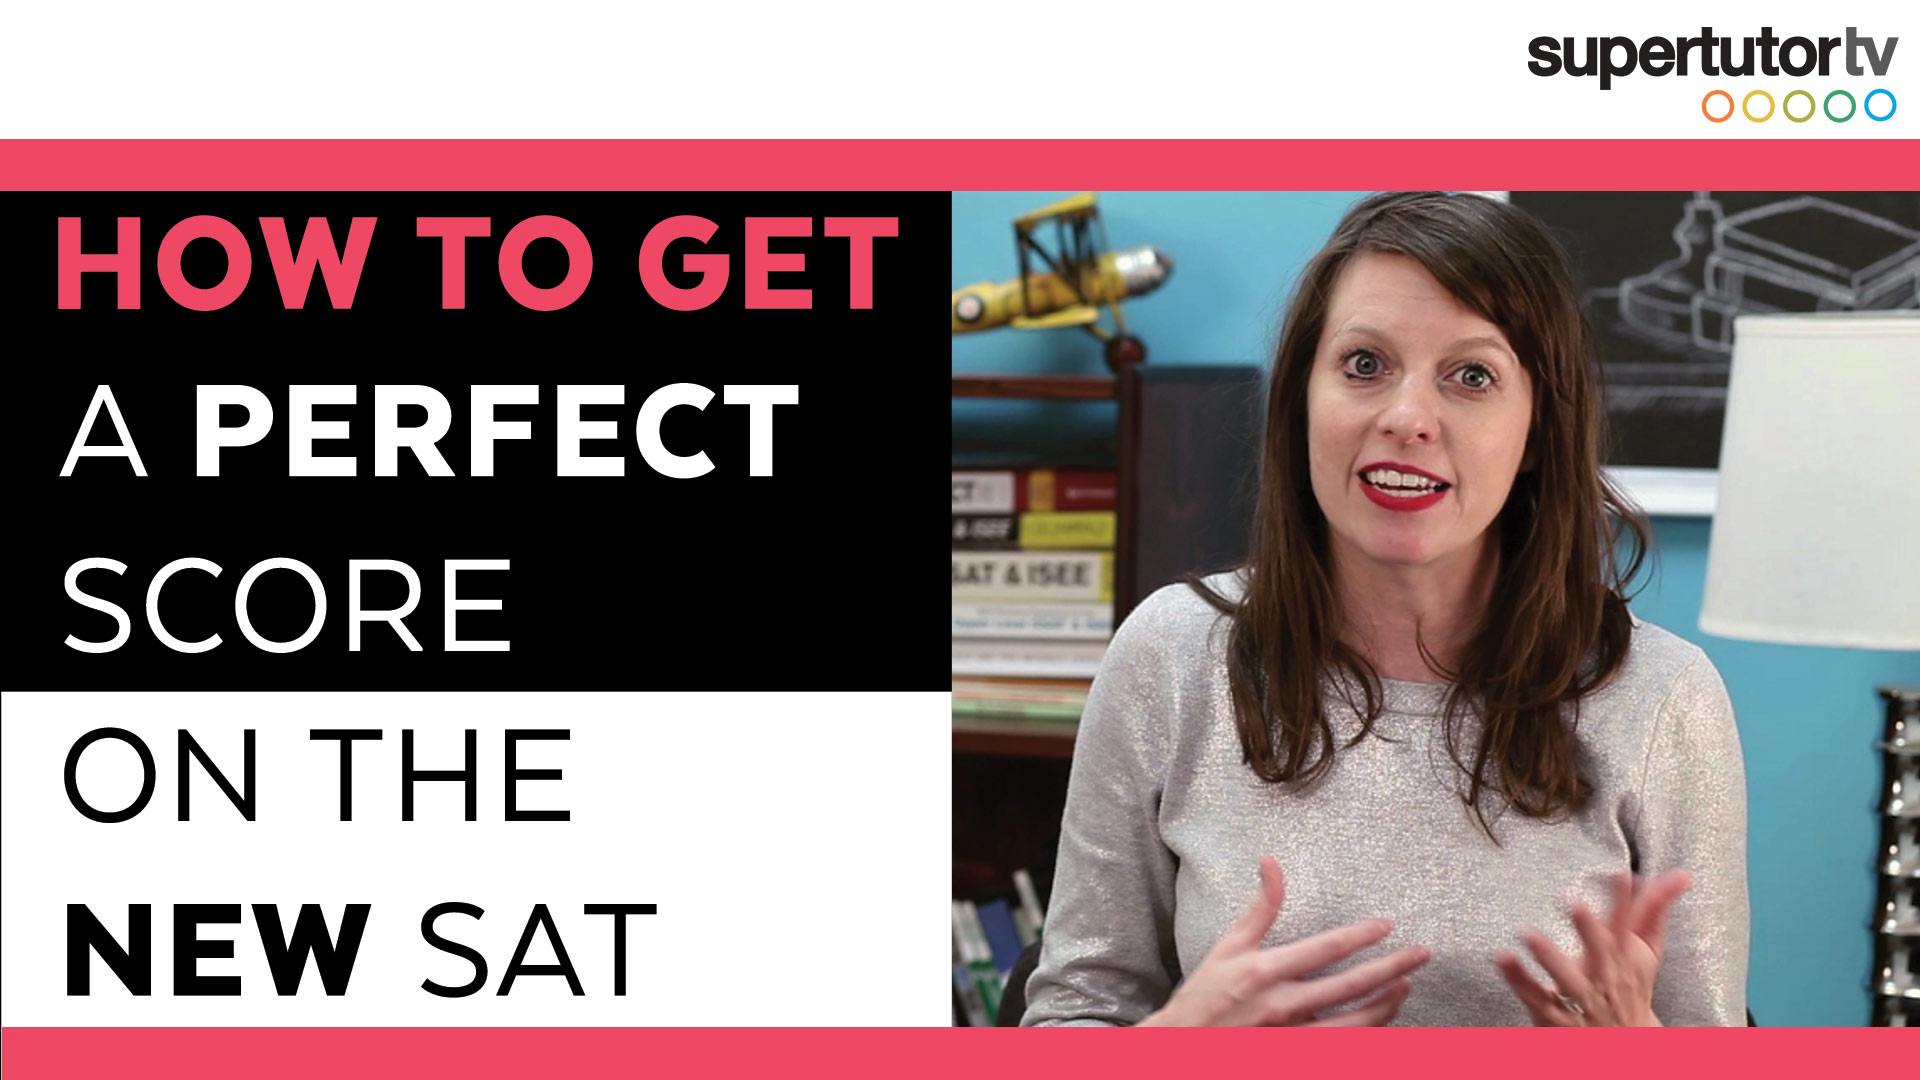 How to Get a Perfect Score on the SAT